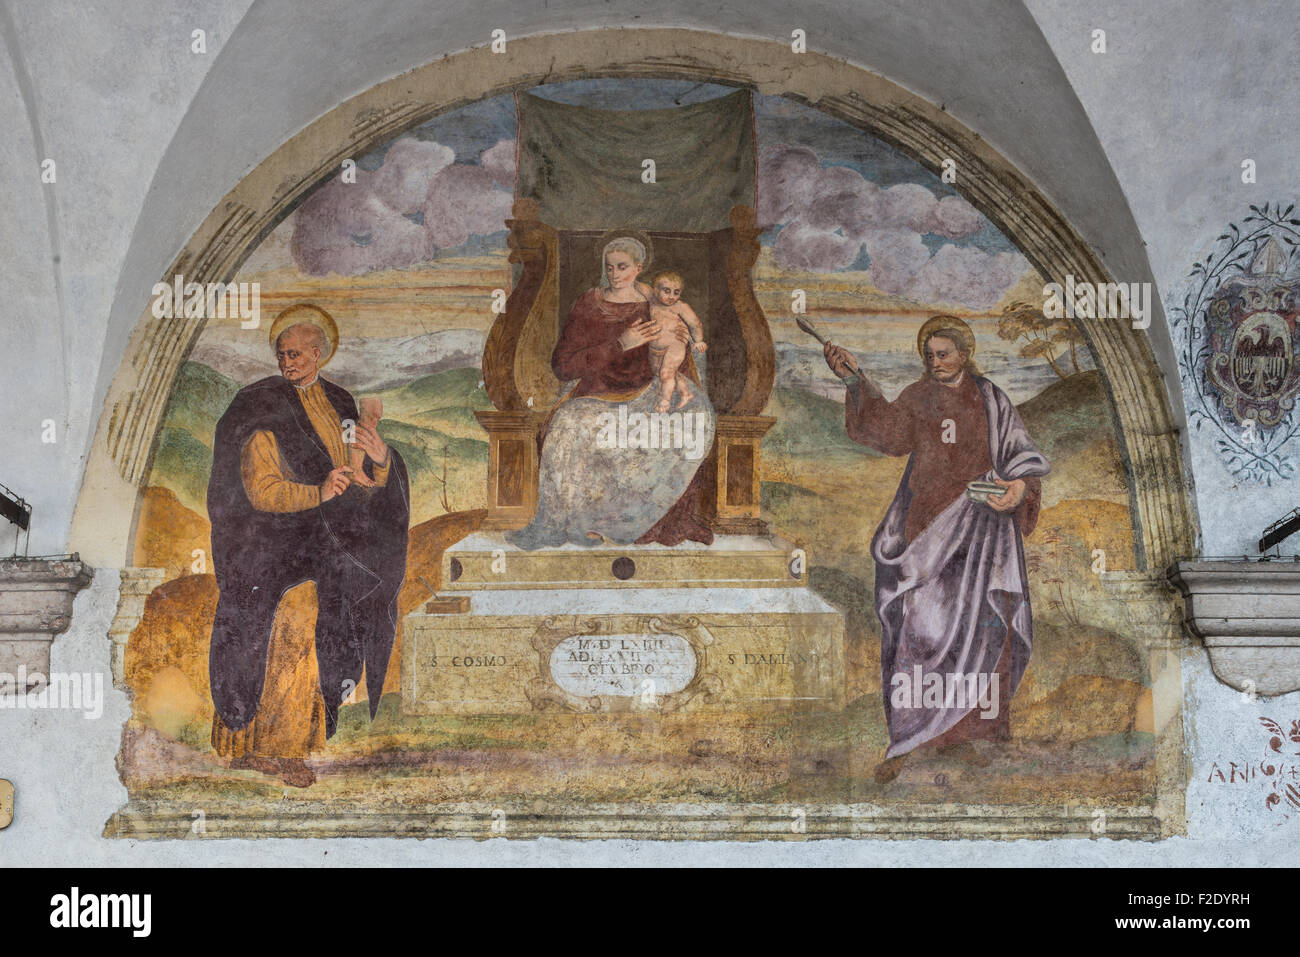 Fresco at the church of San Rocco, 16th century, restored in 2002, Virgin Mary, Holy Doctors Cosmas and Damian - Stock Image